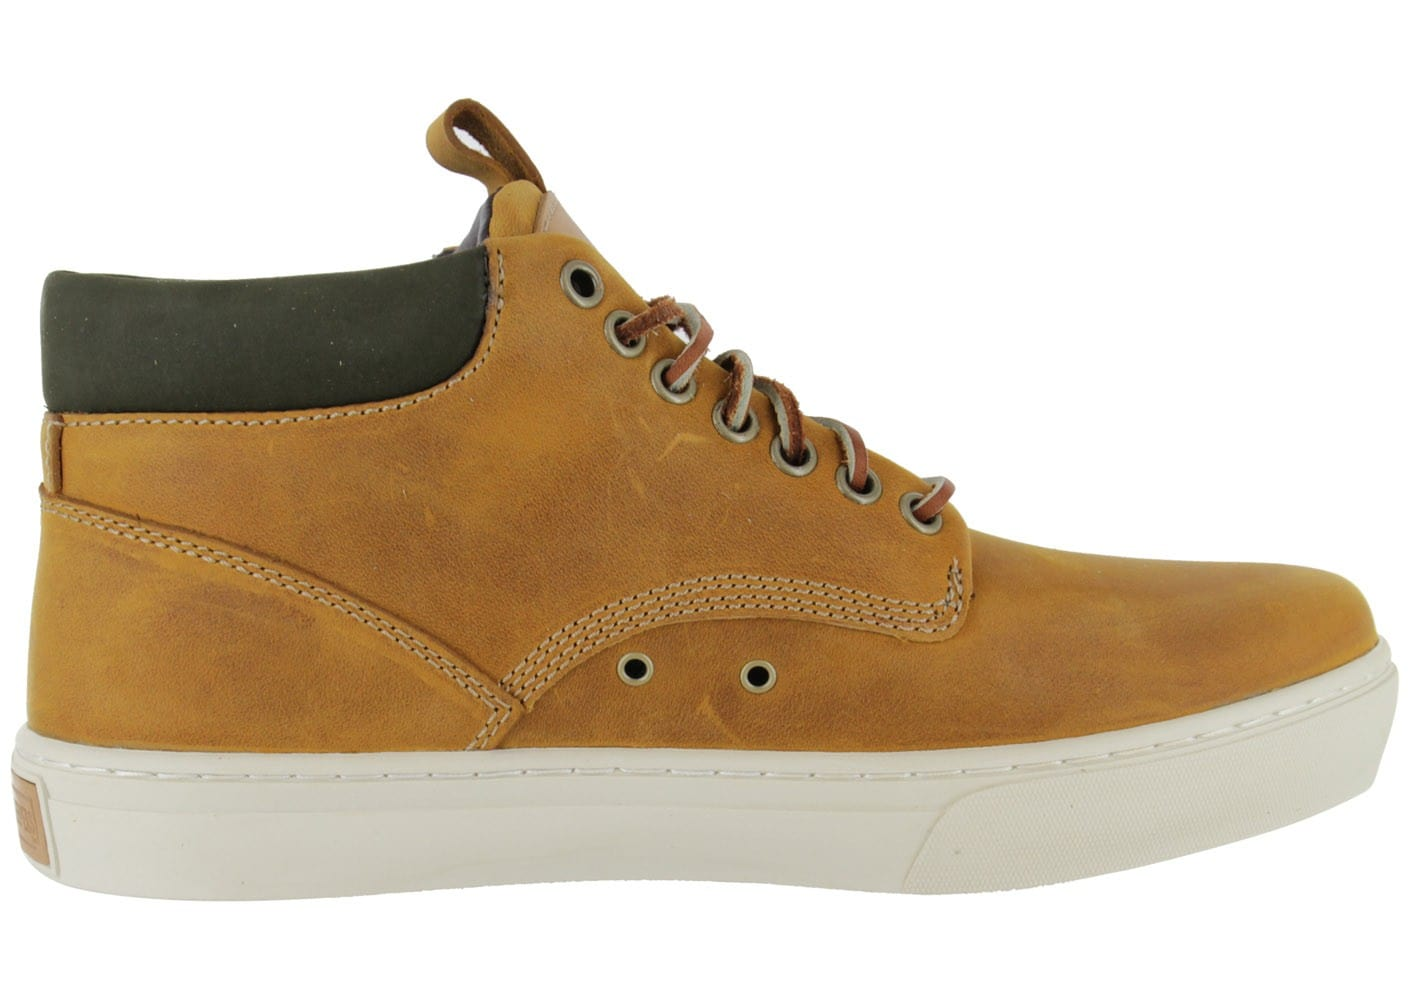 timberland cupsole chukka beige chaussures homme chausport. Black Bedroom Furniture Sets. Home Design Ideas